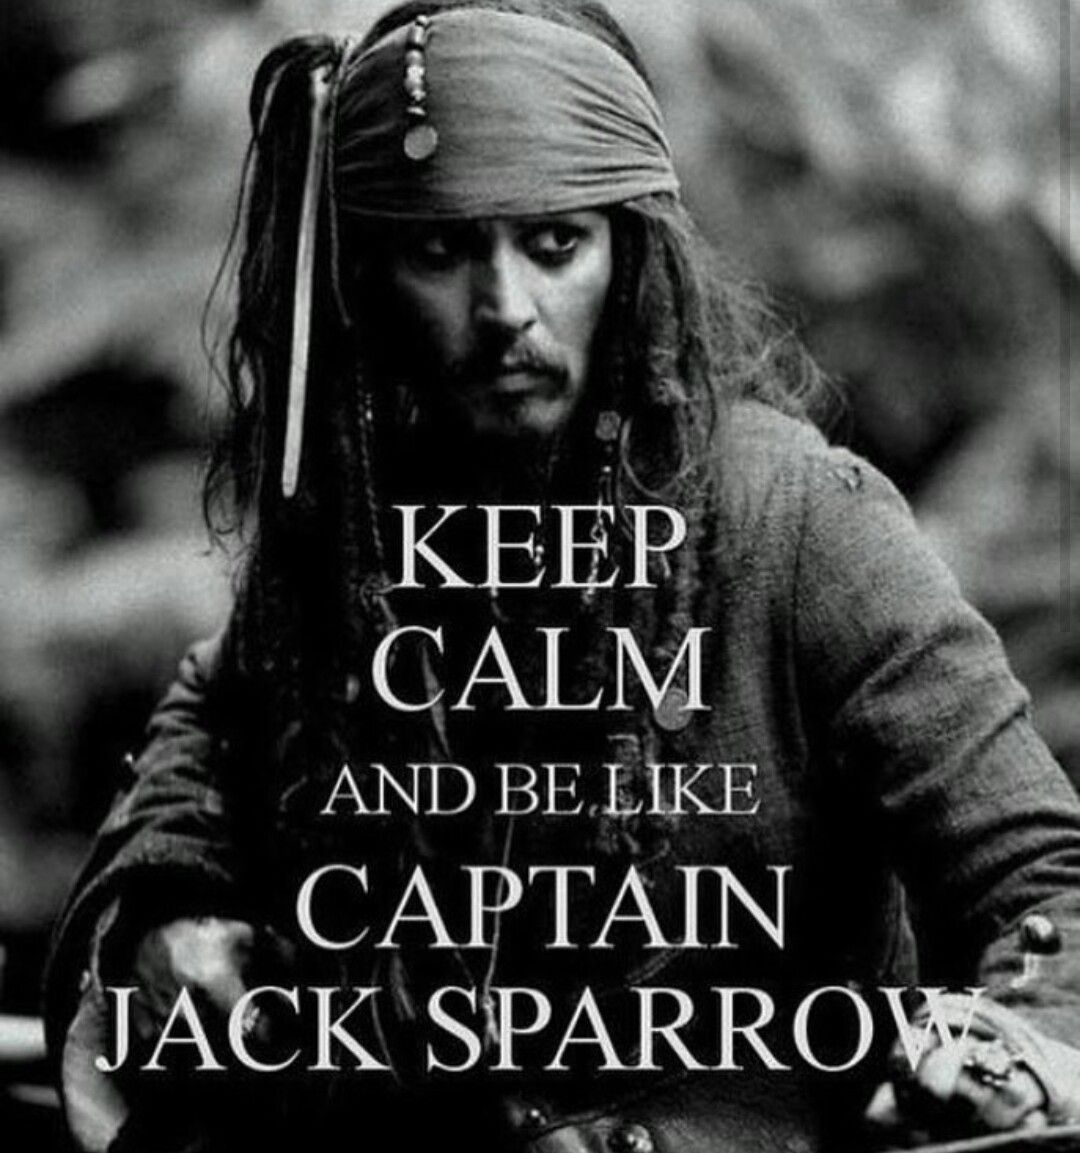 Captain Jack Sparrow Quotes Wallpapers Top Free Captain